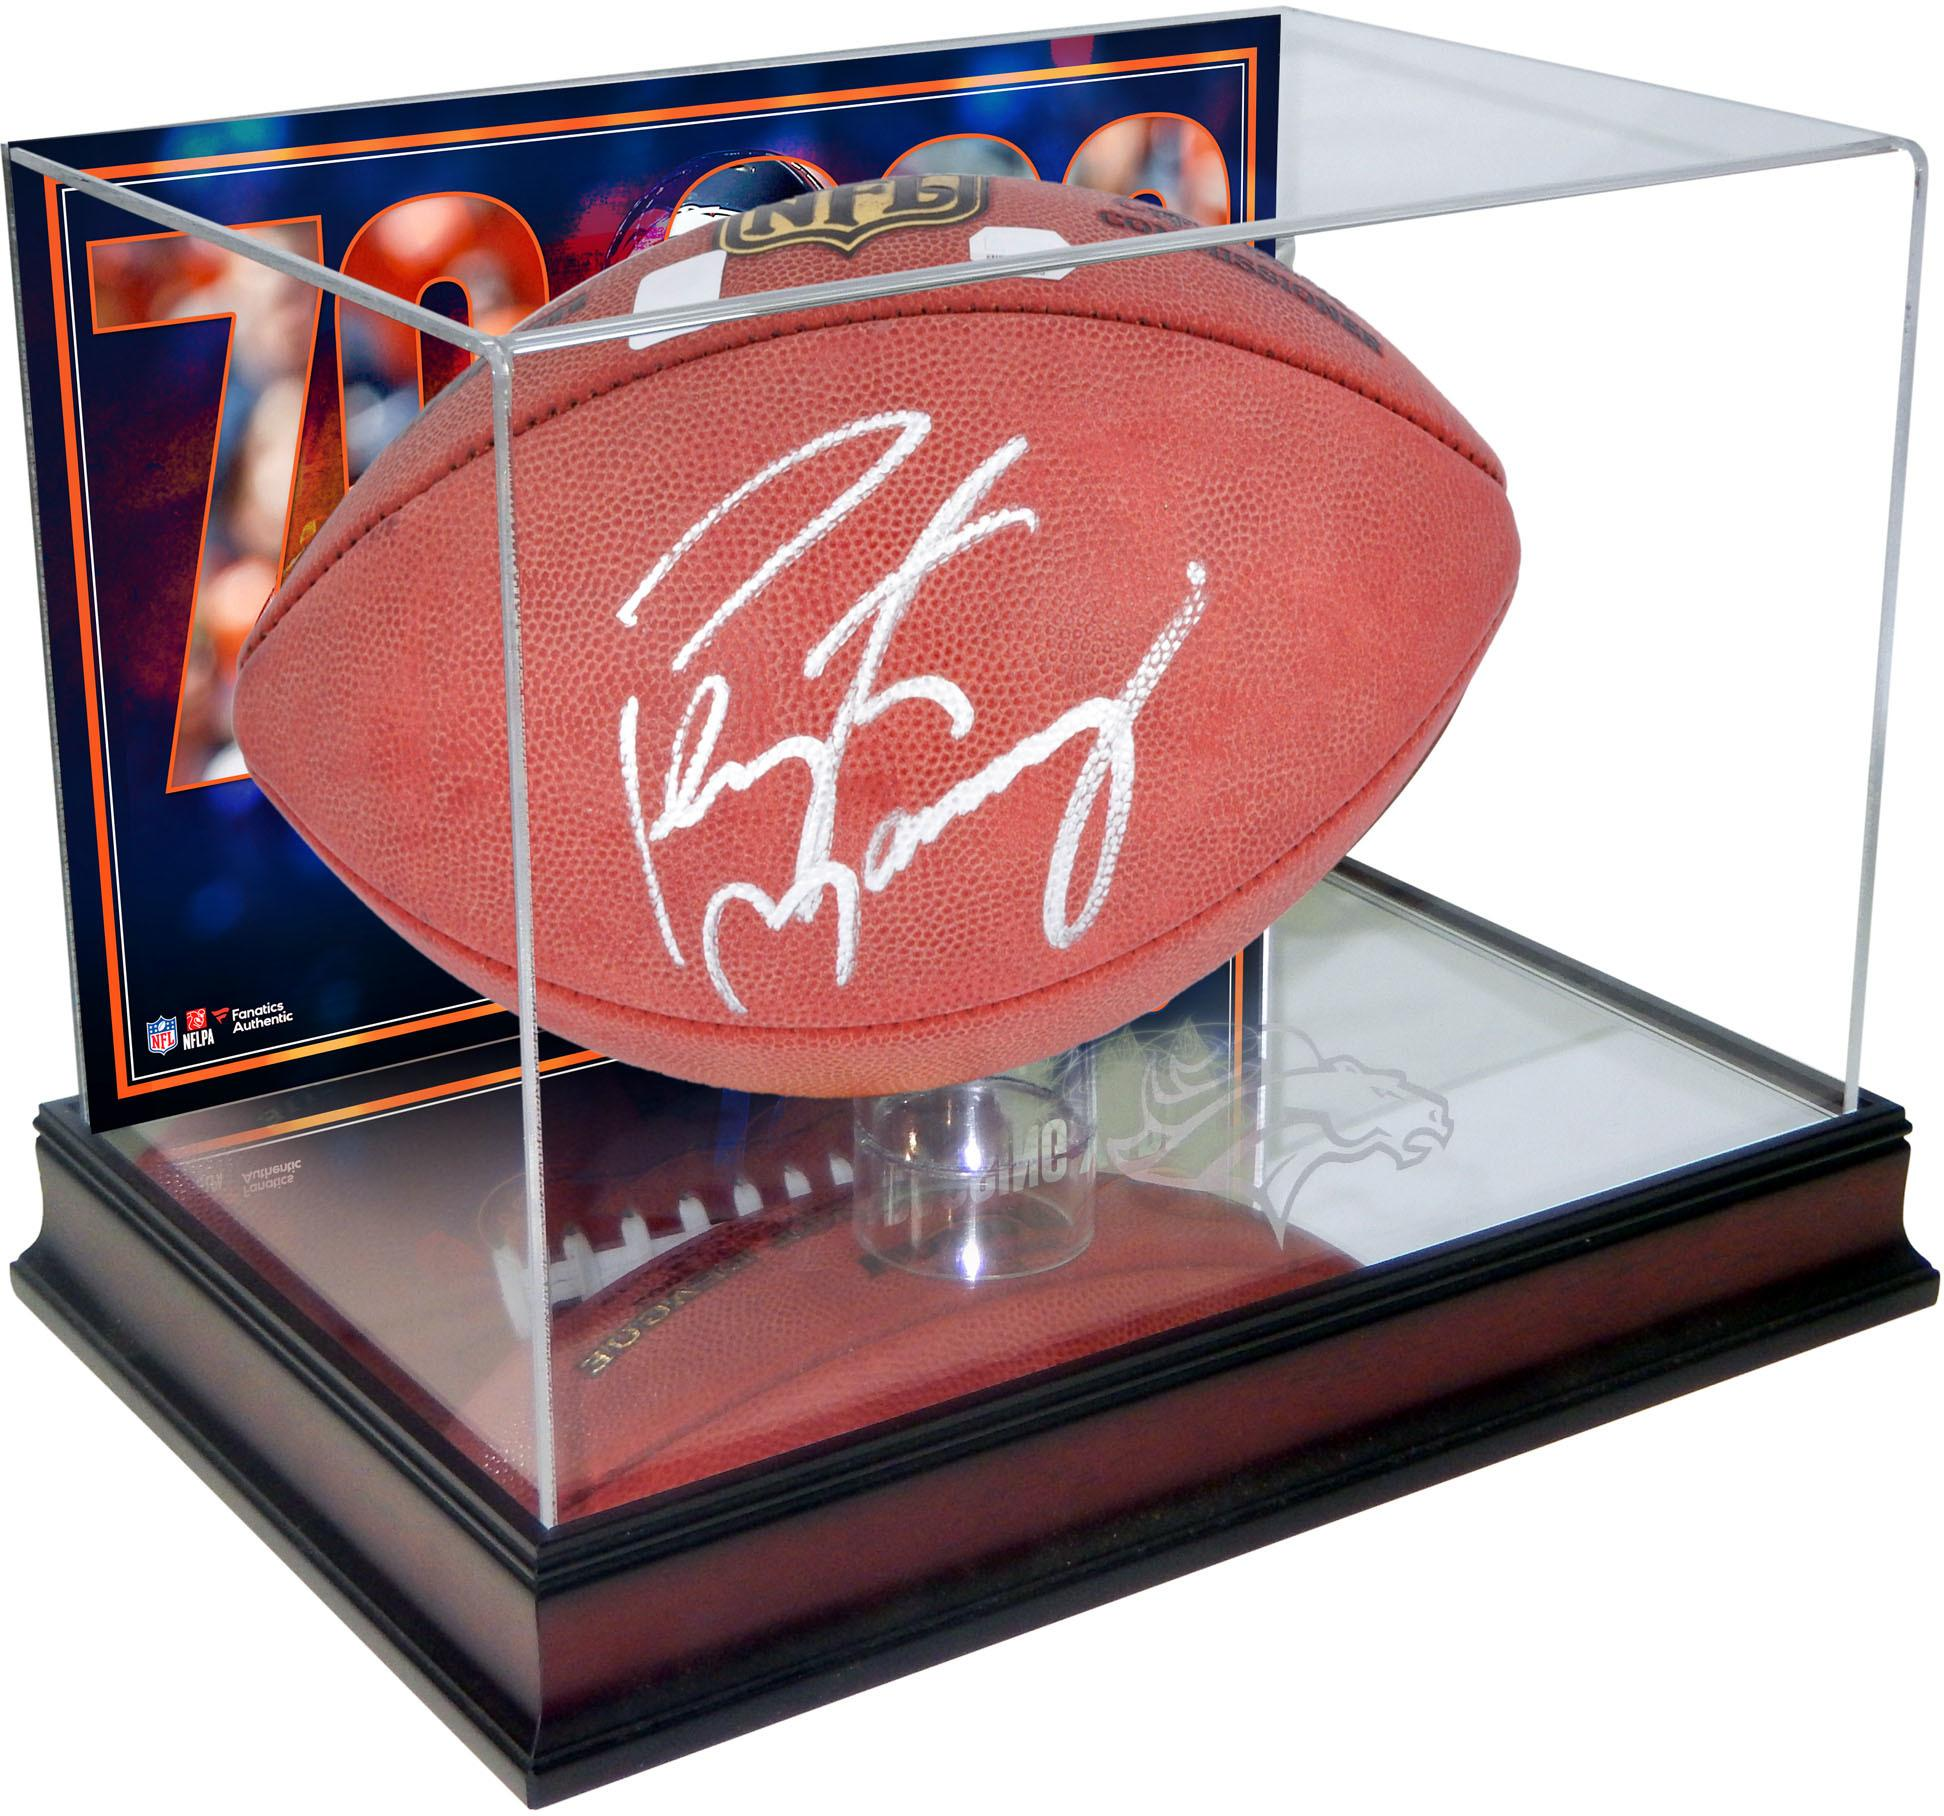 Peyton Manning Denver Broncos Autographed Football with Mahogany Base Football Display Case with 70,000 Passing Yards Back - Fanatics Authentic Certified